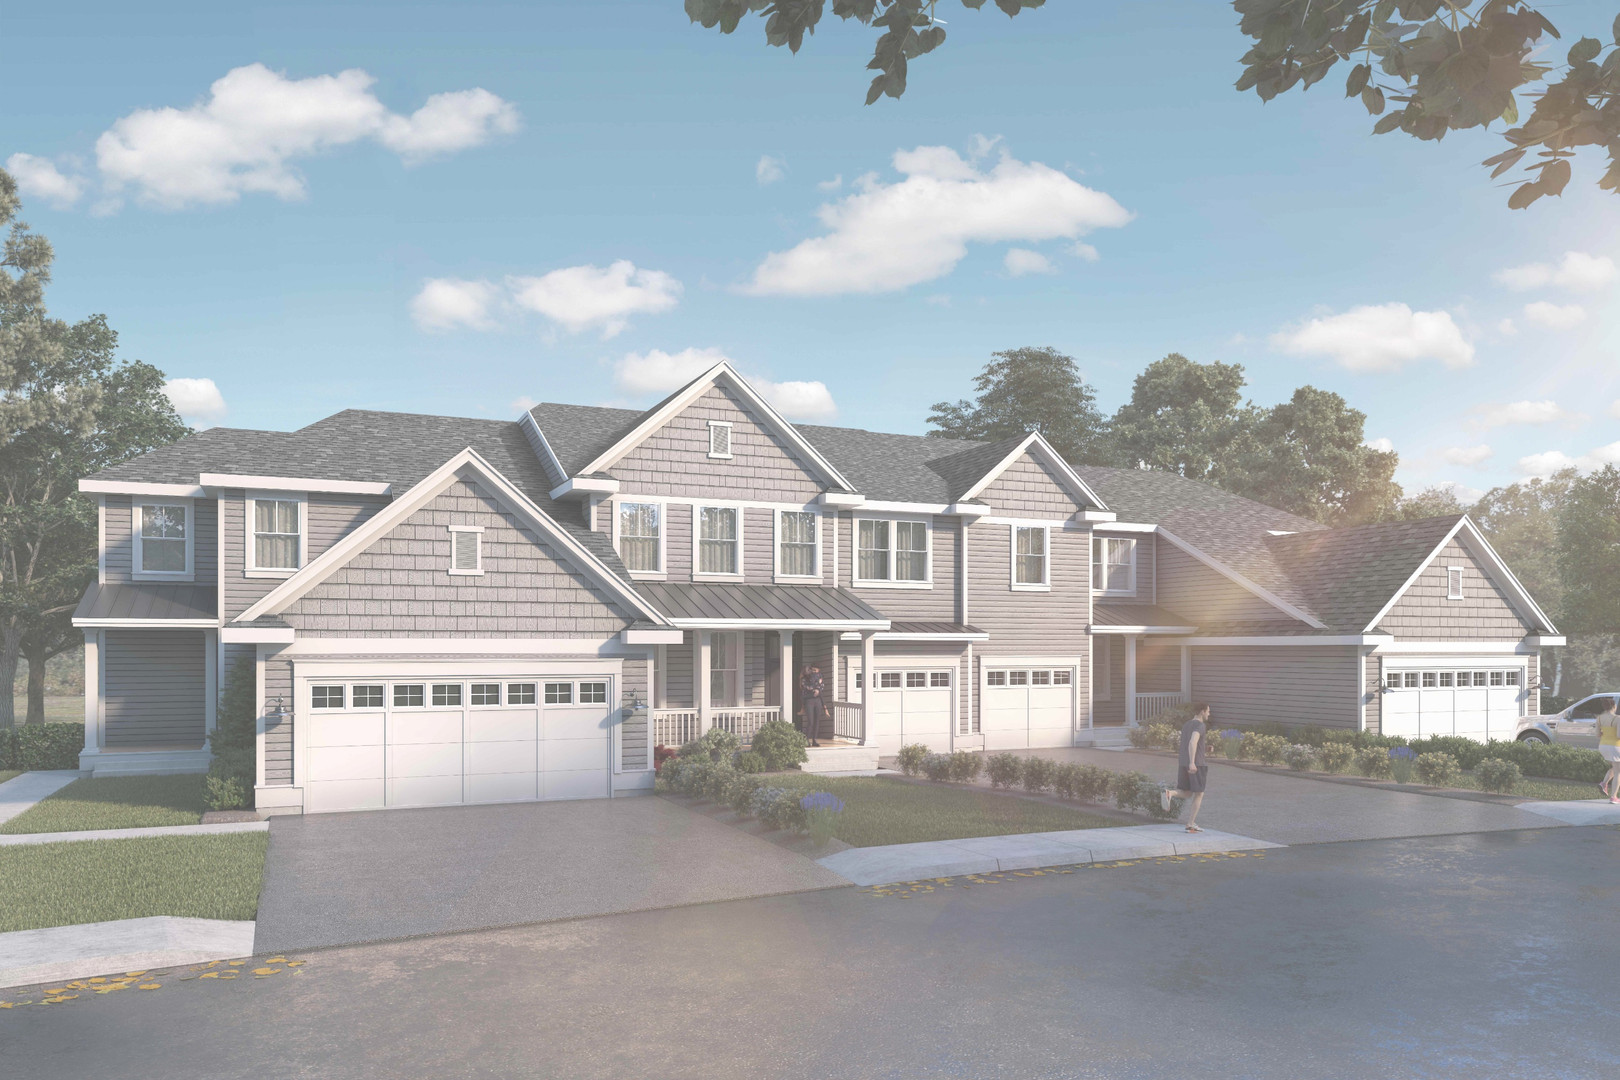 Lexington Meadows computerized rendering of home